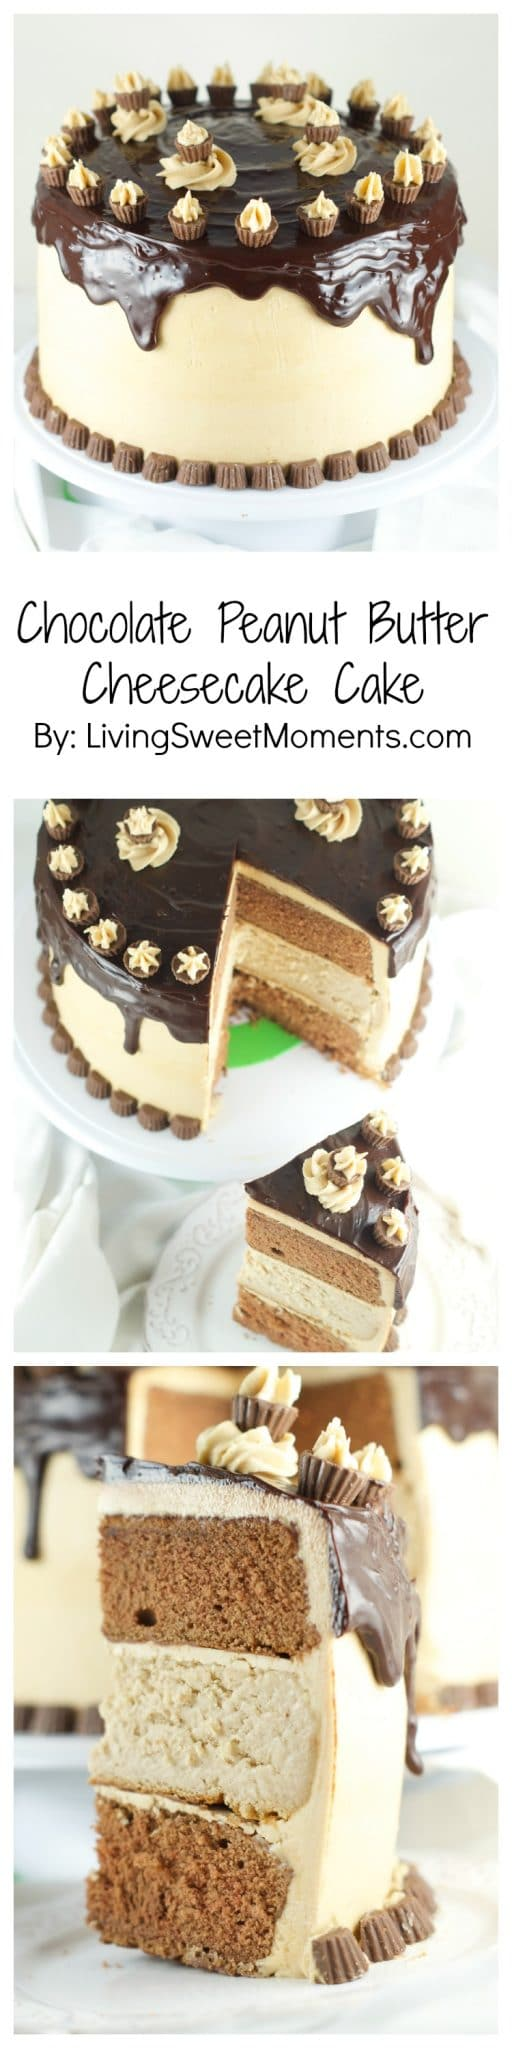 Chocolate Peanut Butter Cheesecake Cake - This is amazing cake features 2 chocolate cakes, a peanut butter cheesecake all covered in peanut butter buttercream and drizzled with chocolate ganache. The ultimate dessert. More cake recipes at livingsweetmoments.com